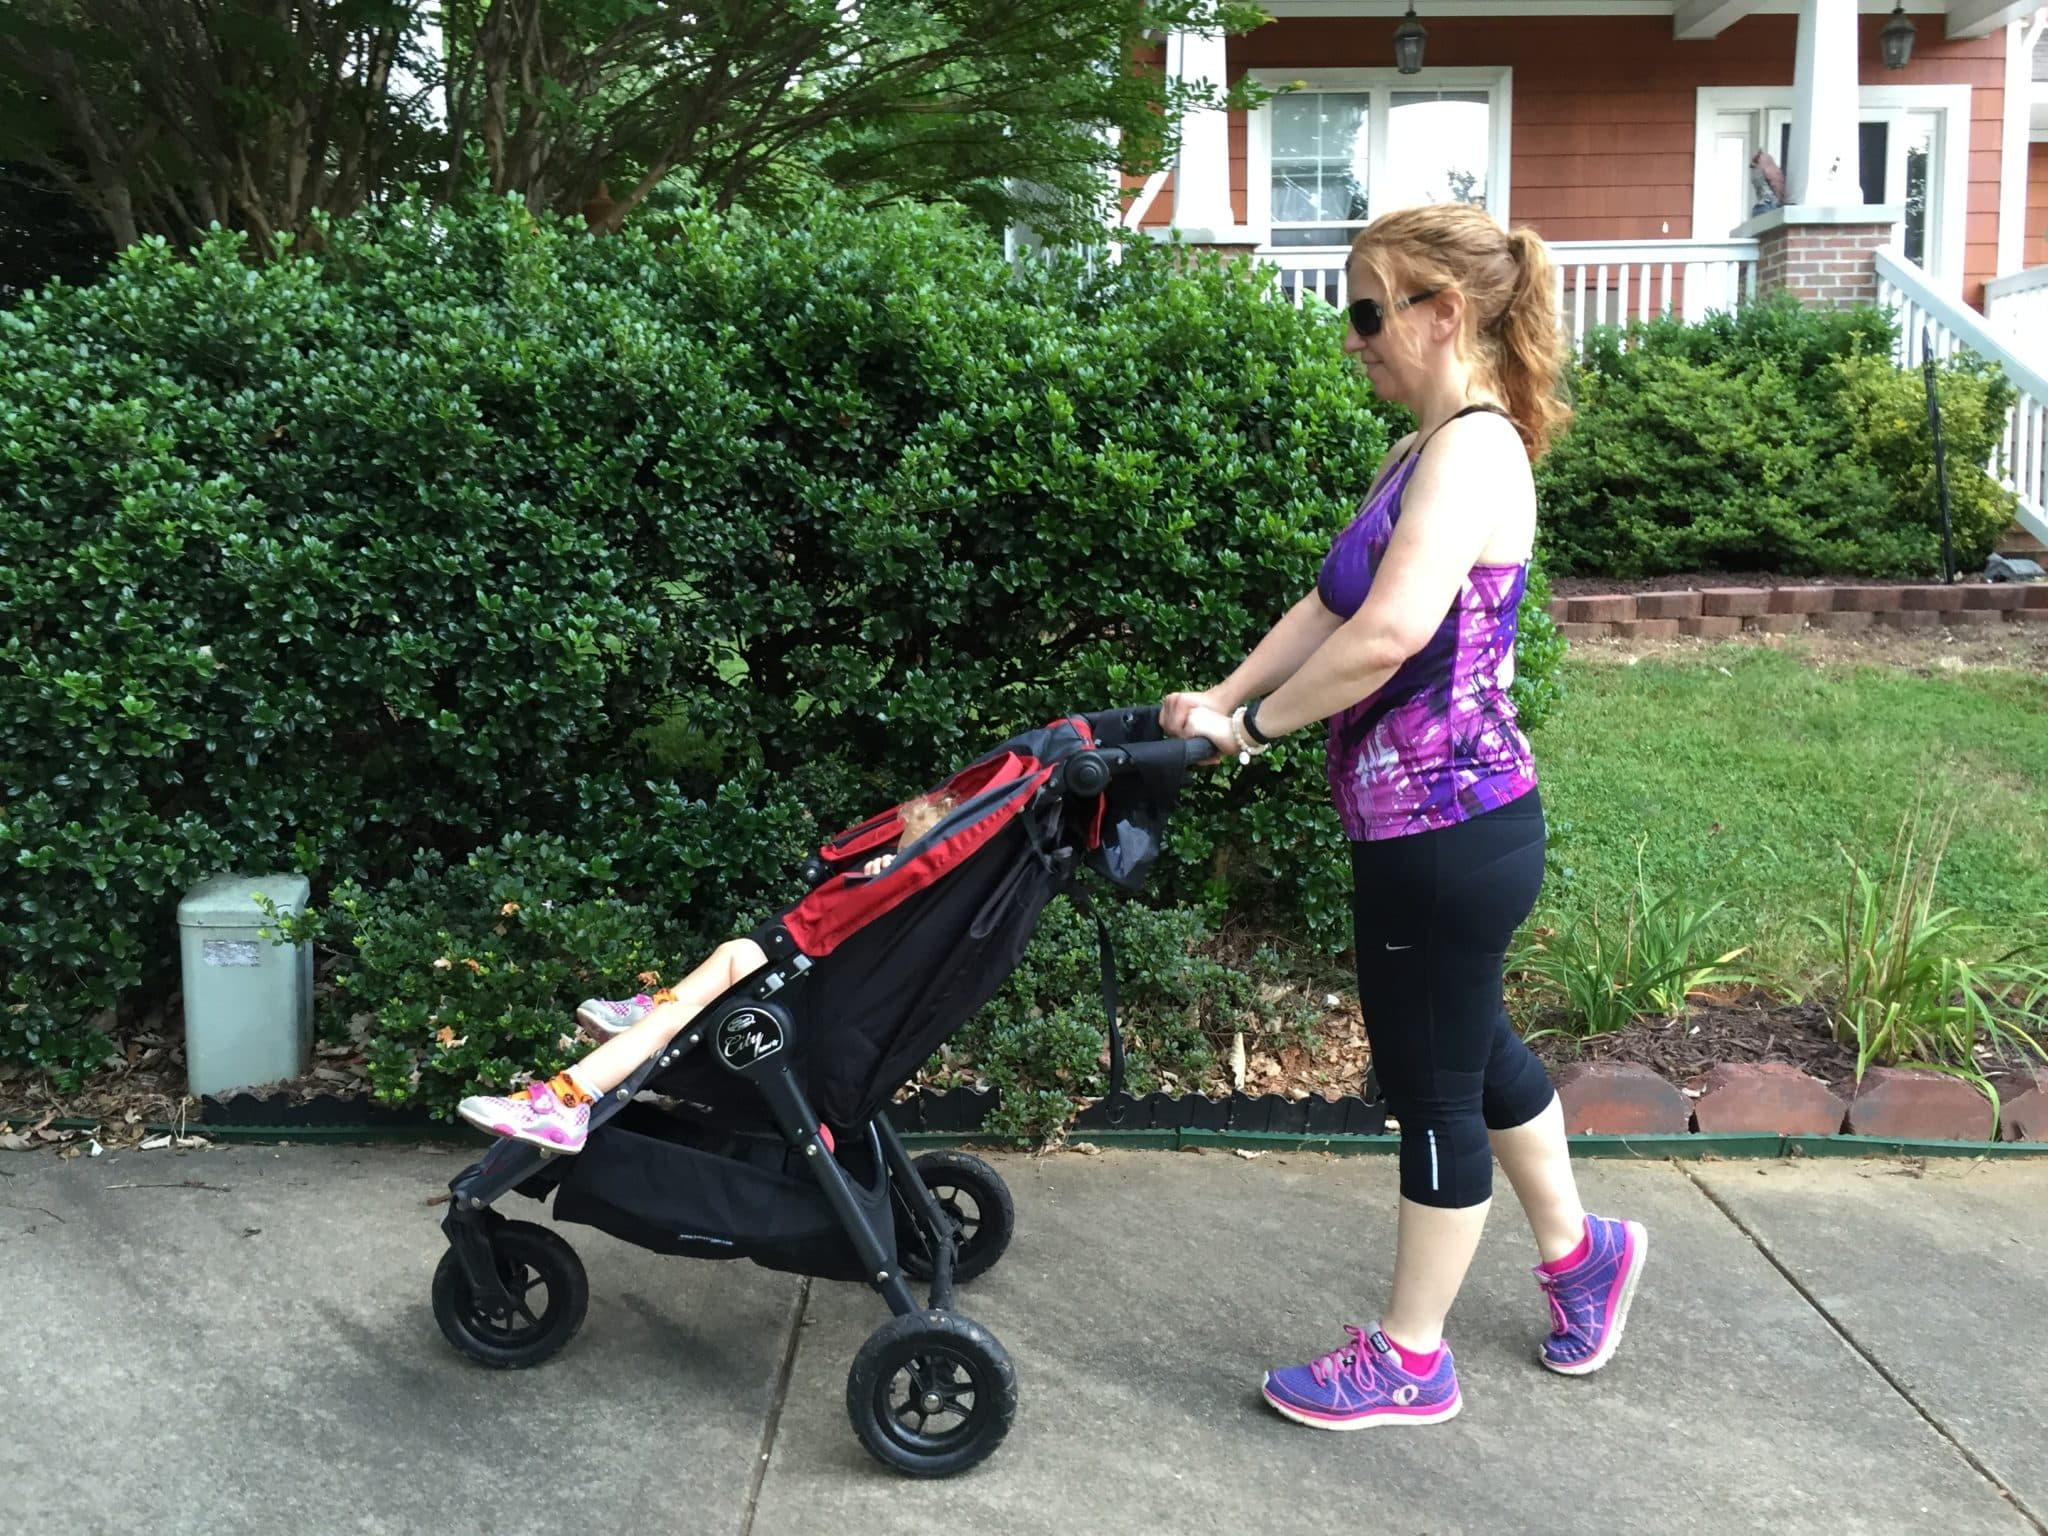 Take your baby on your next workout! This strength training workout requires a stroller and that's it. Double duty, baby!